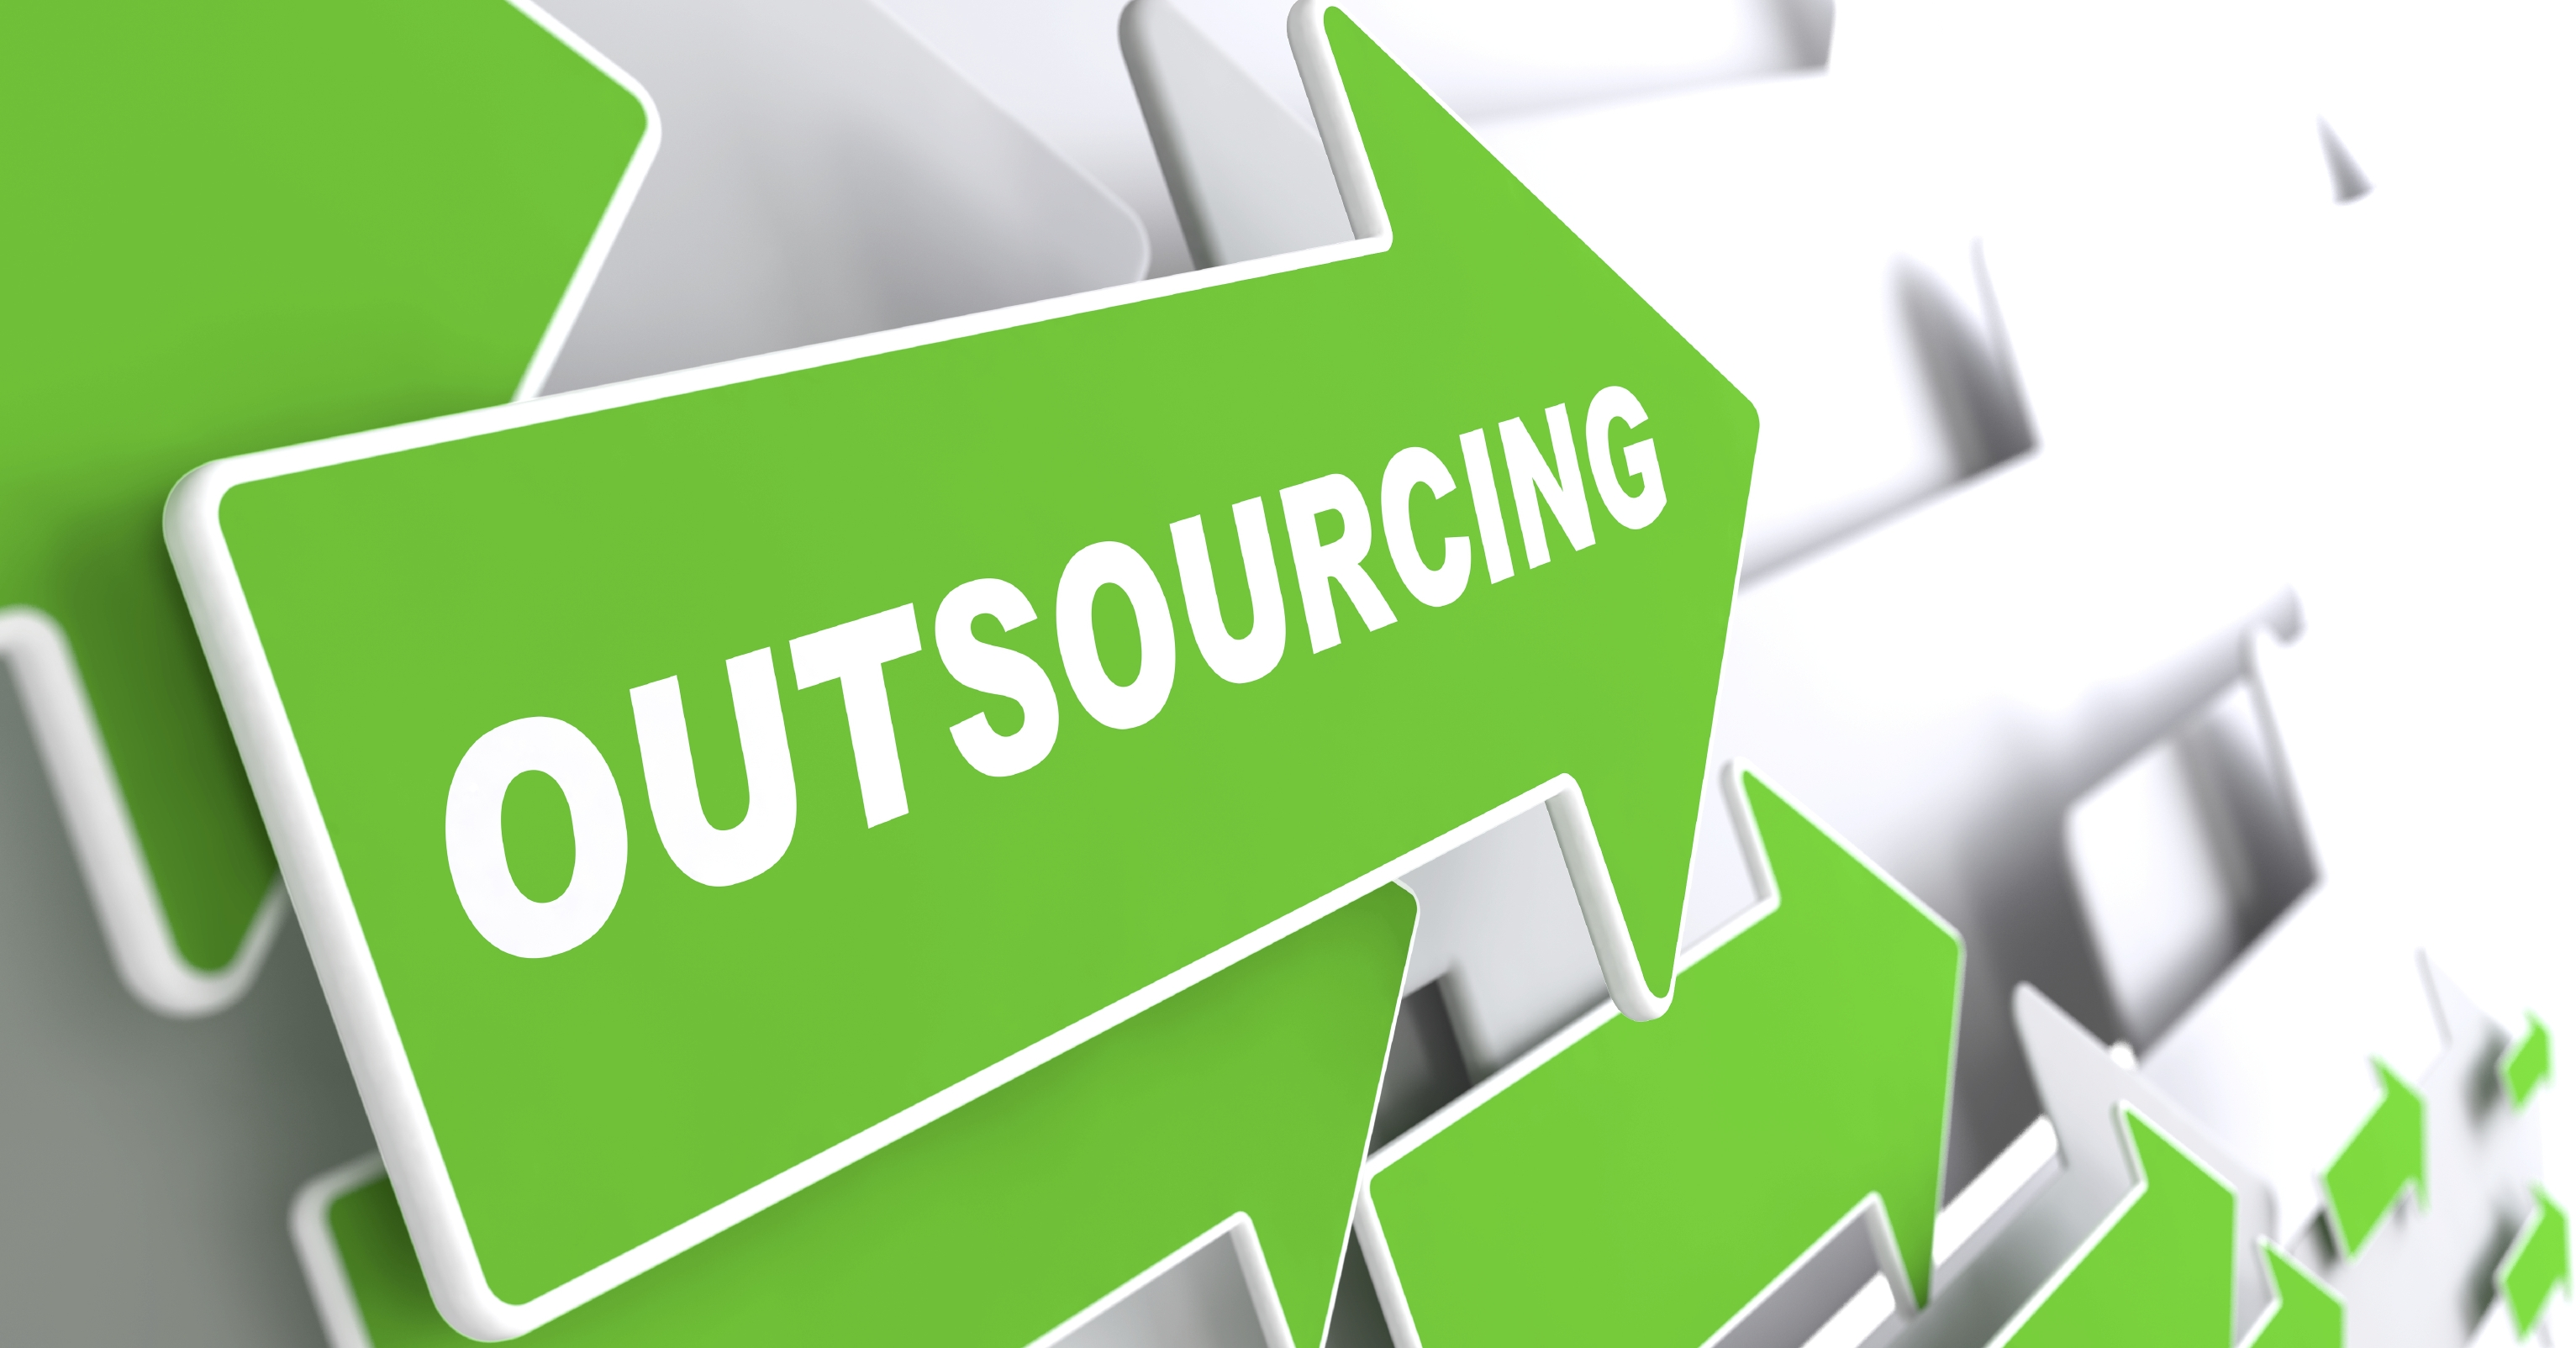 """Outsourcing - Business Background. Green Arrow with """"Outsourcing"""" Slogan on a Grey Background. 3D Render."""